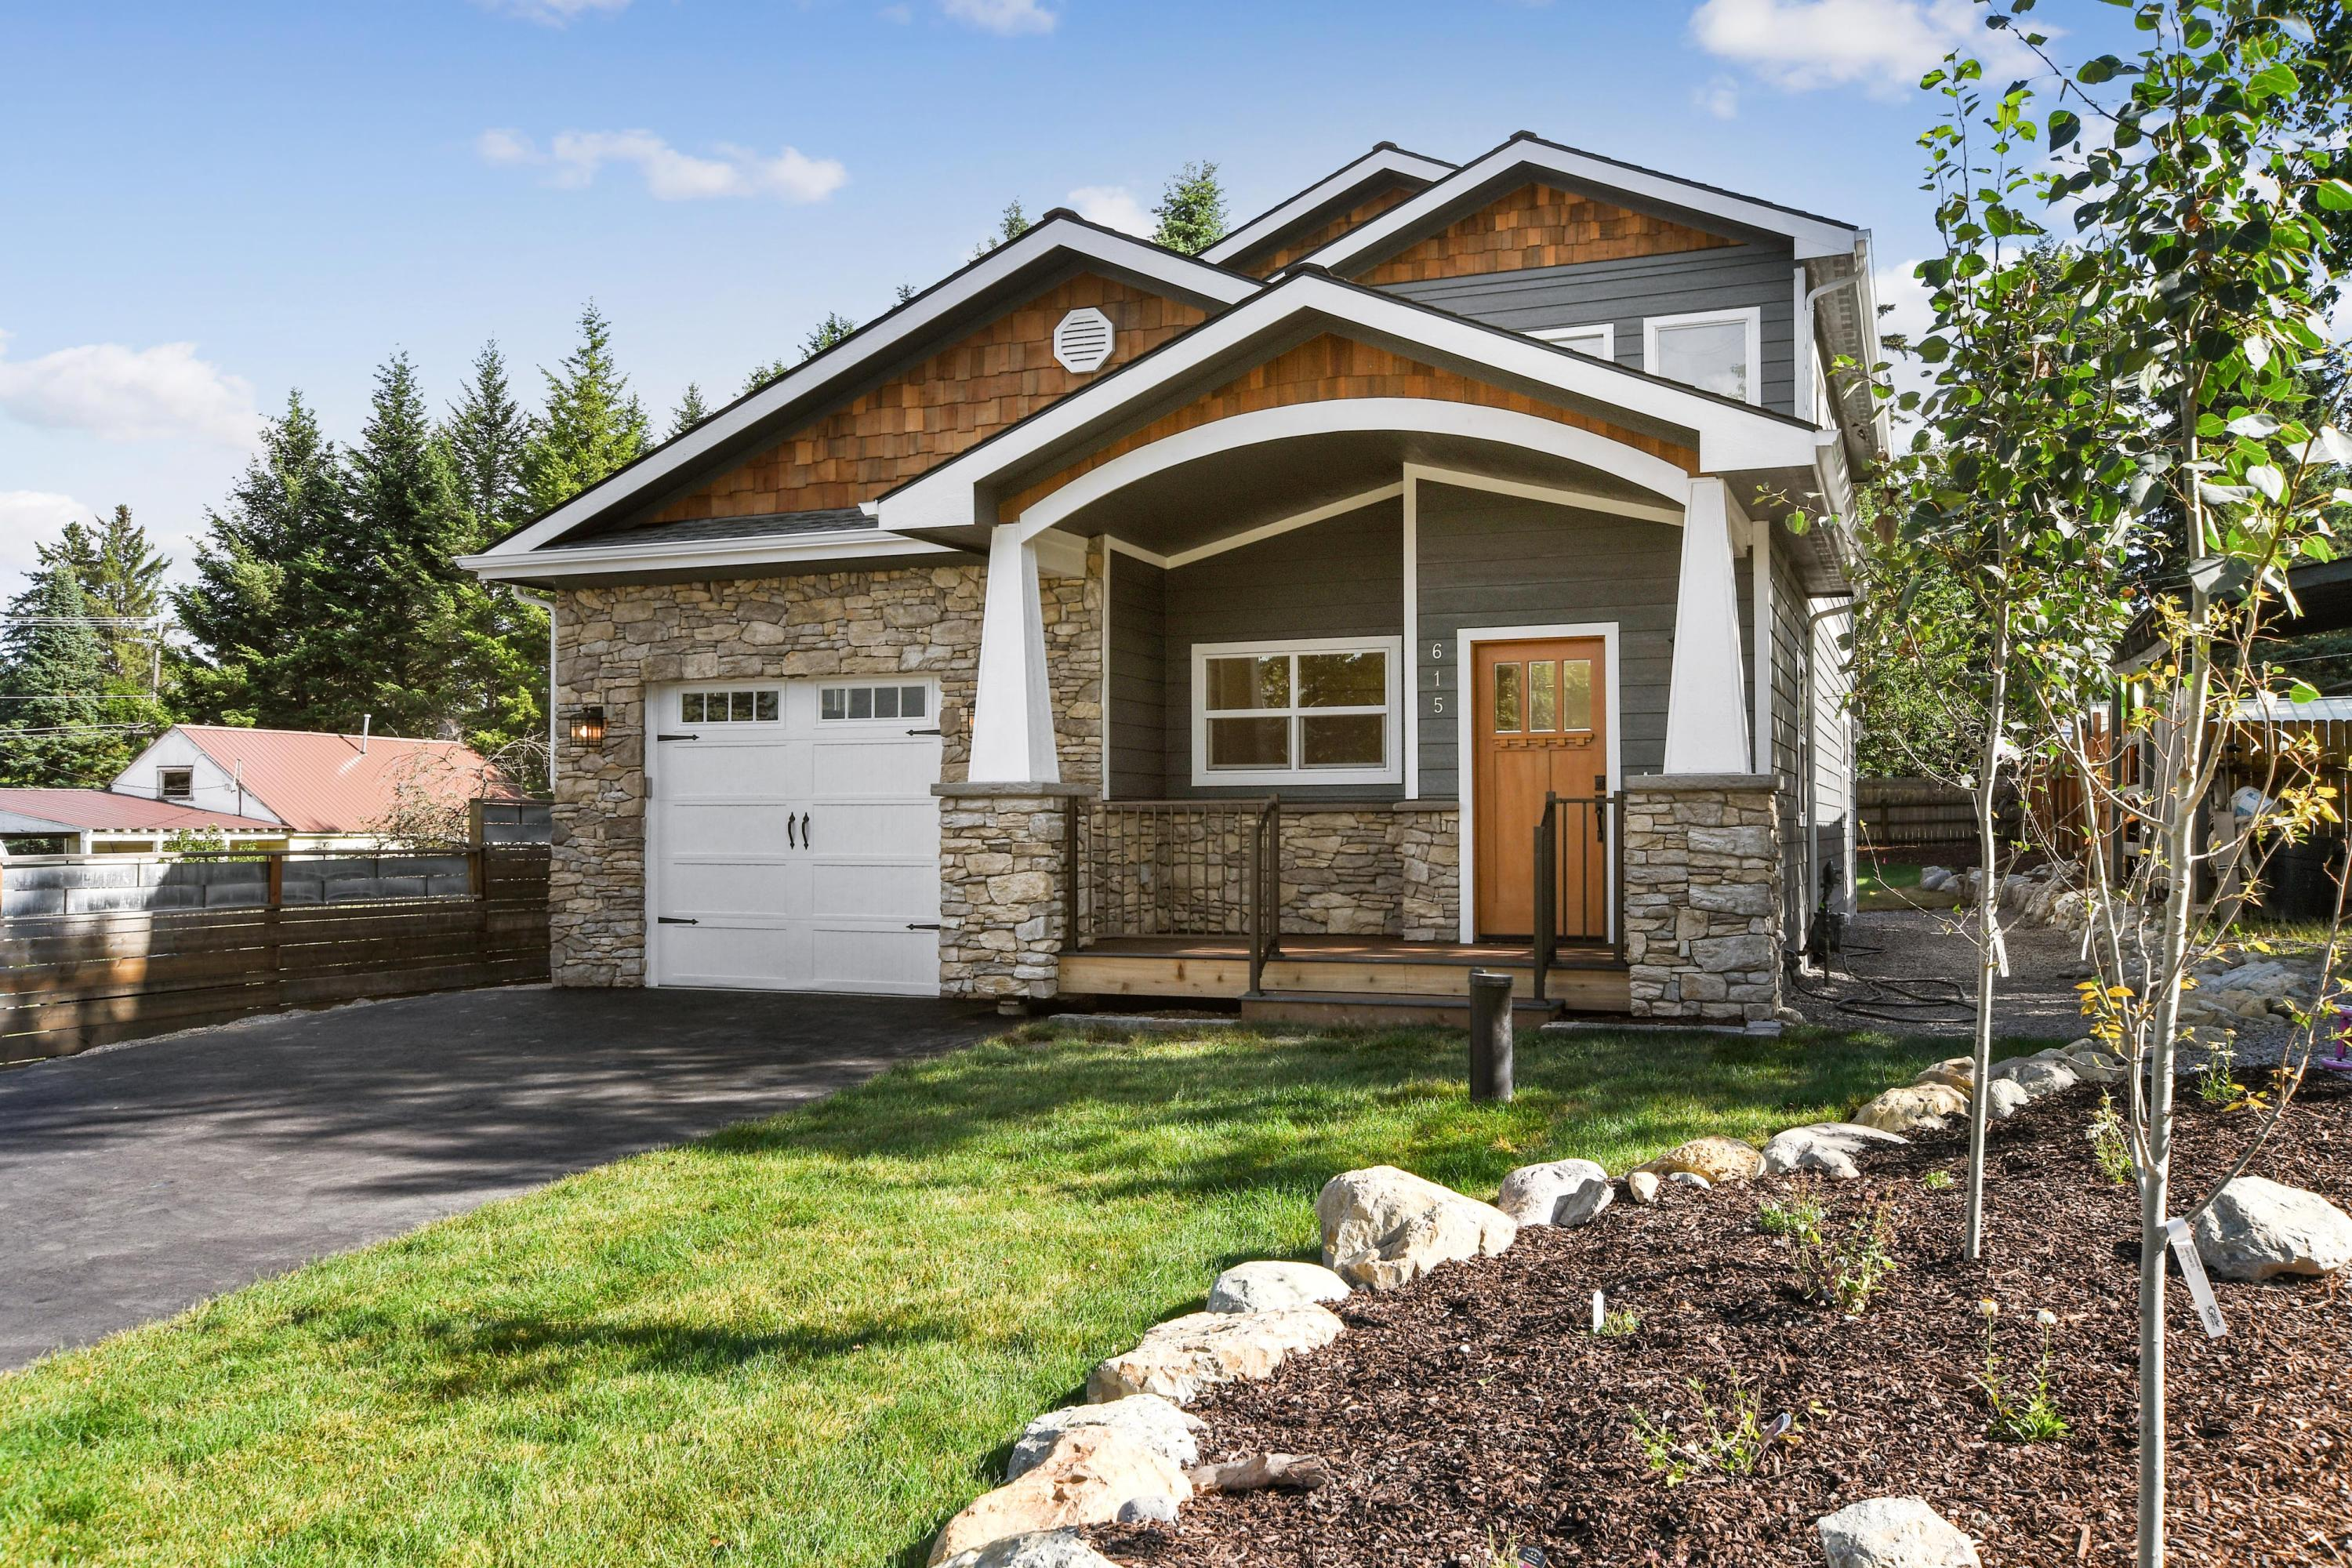 Home for Sale at 615 3rd Street West in Whitefish, Montana